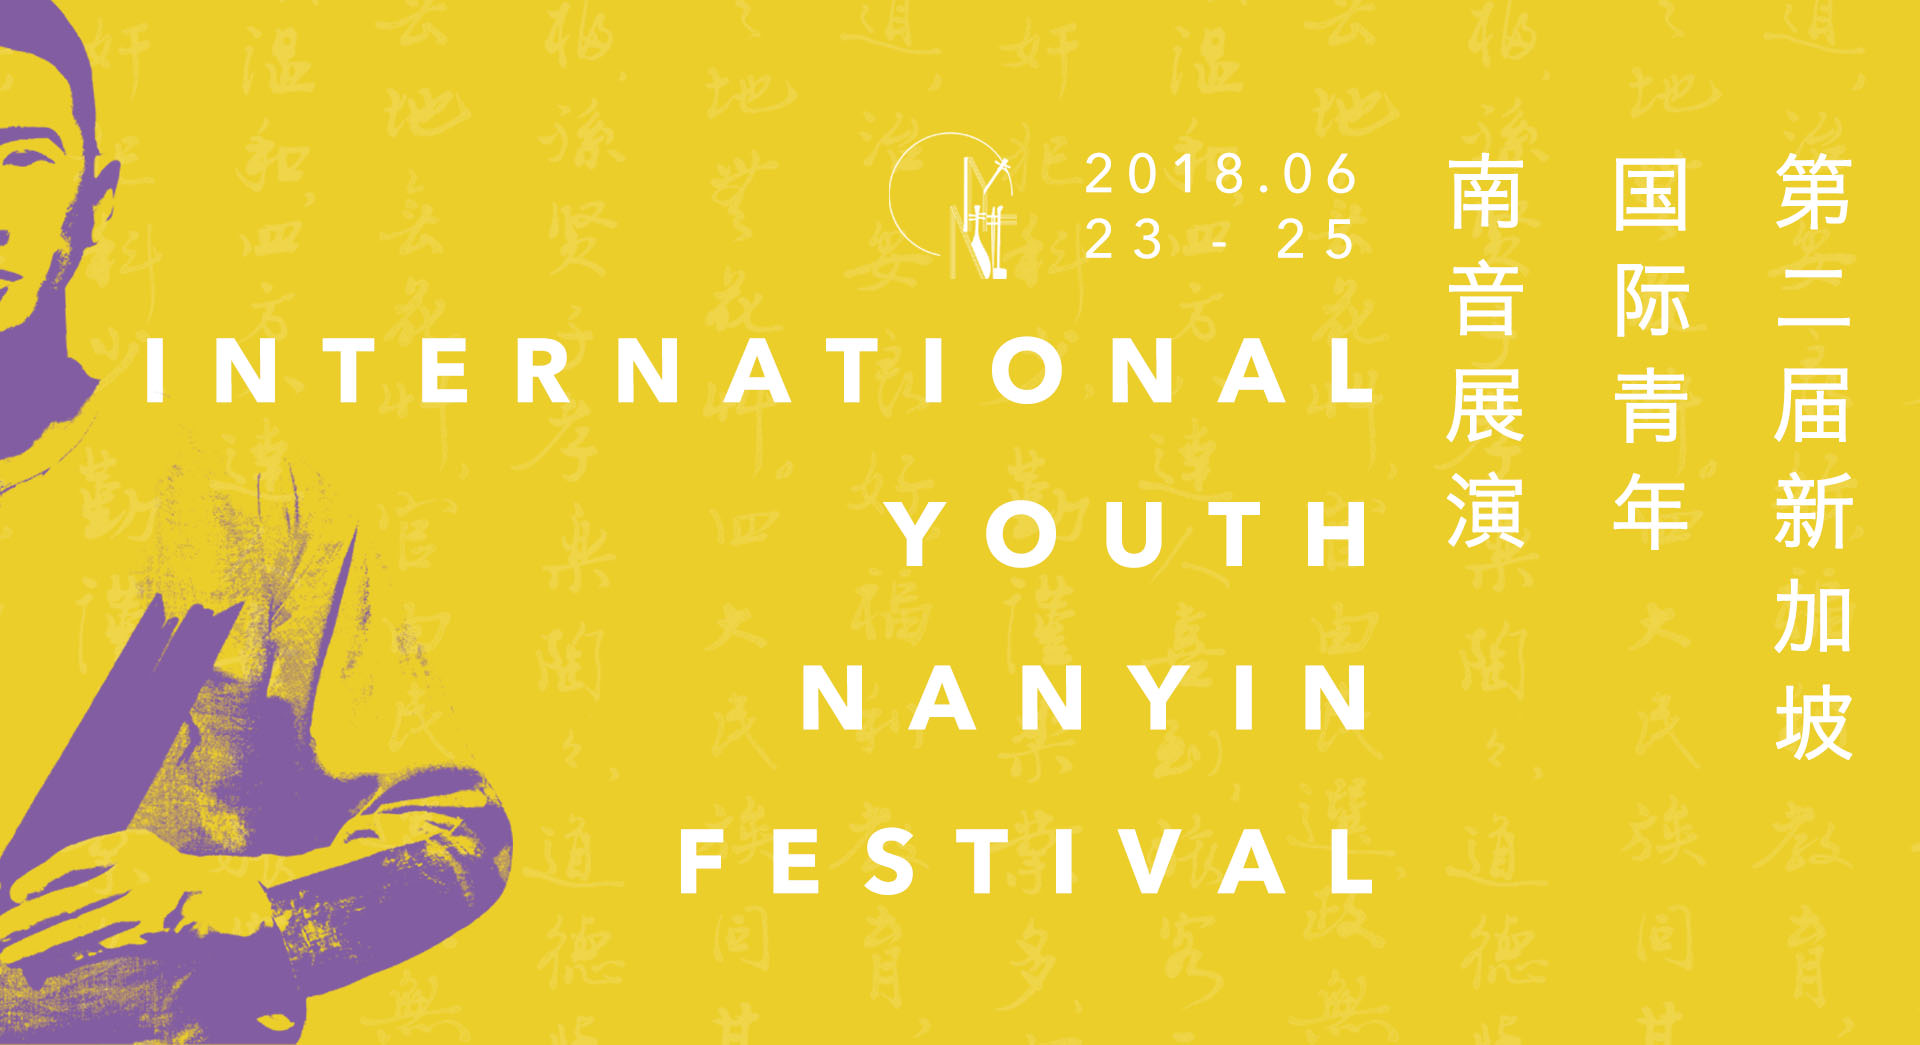 2018 International Youth Nanyin Festival